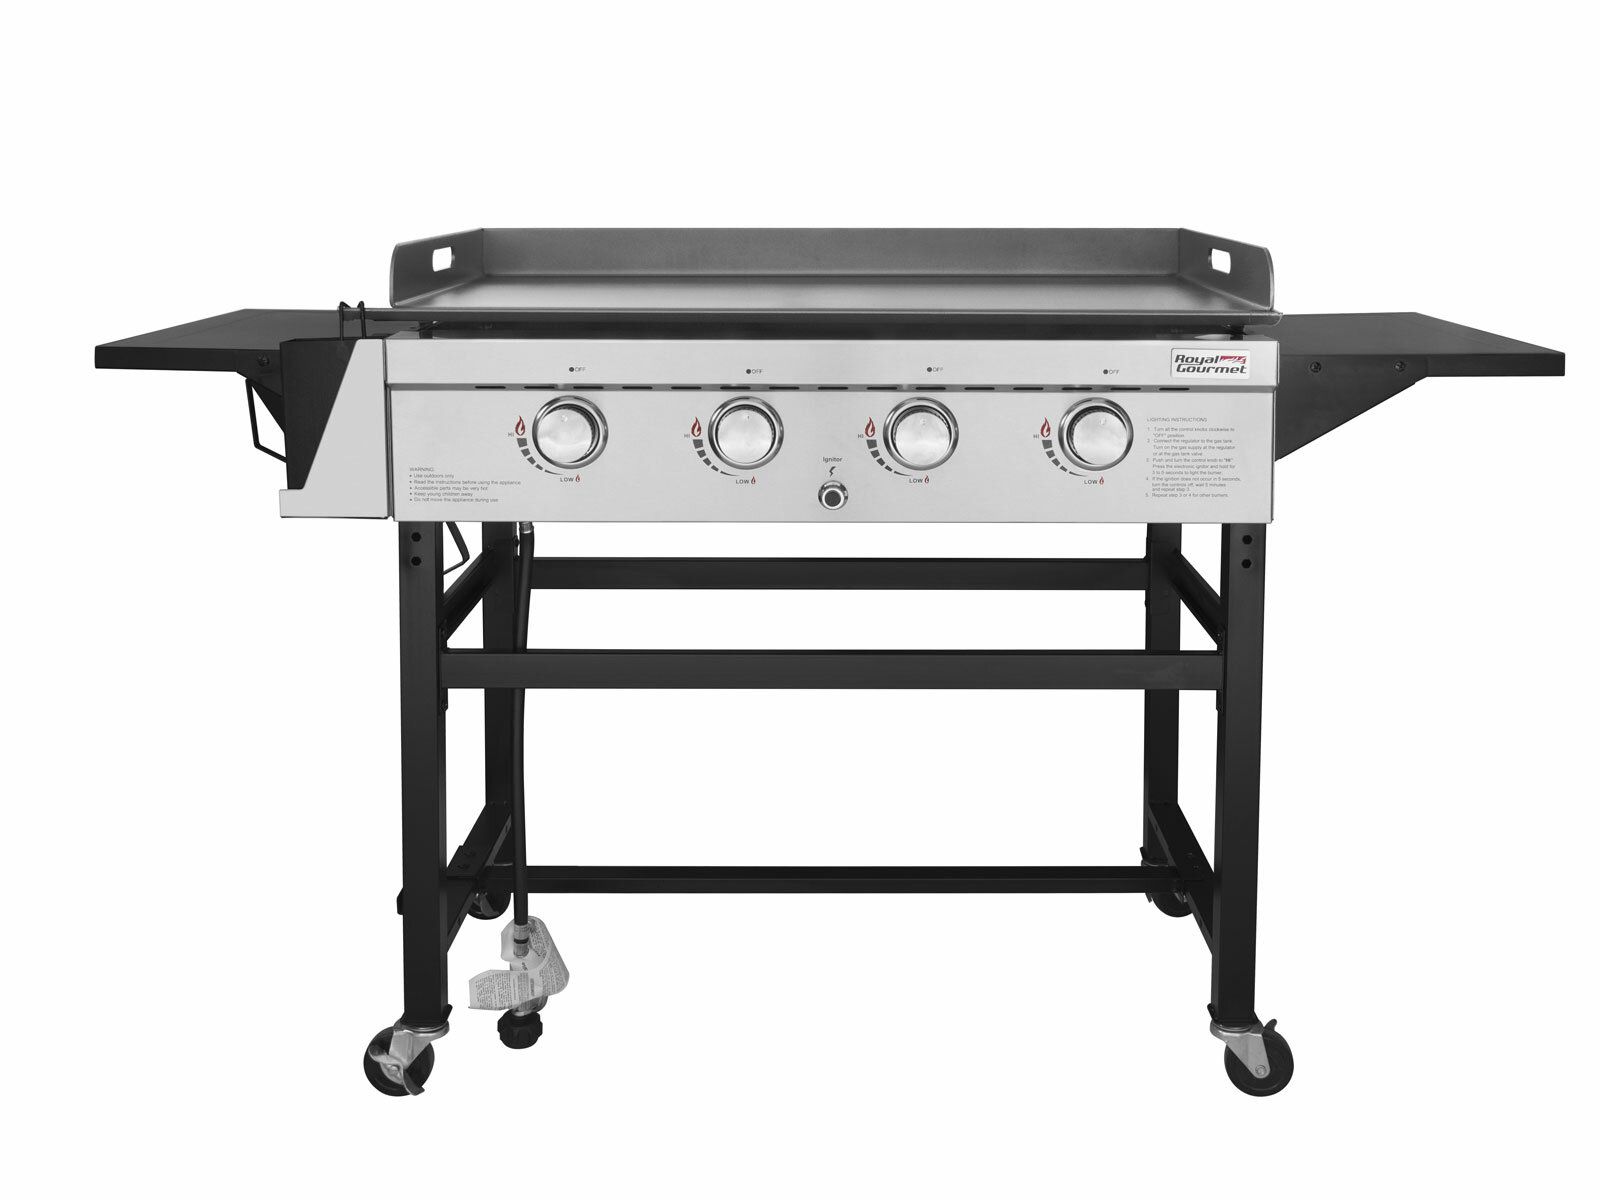 Stainless Steel Flat Top Griddle Grill Topper Outdoor Gas Stove Cover Plate Pan